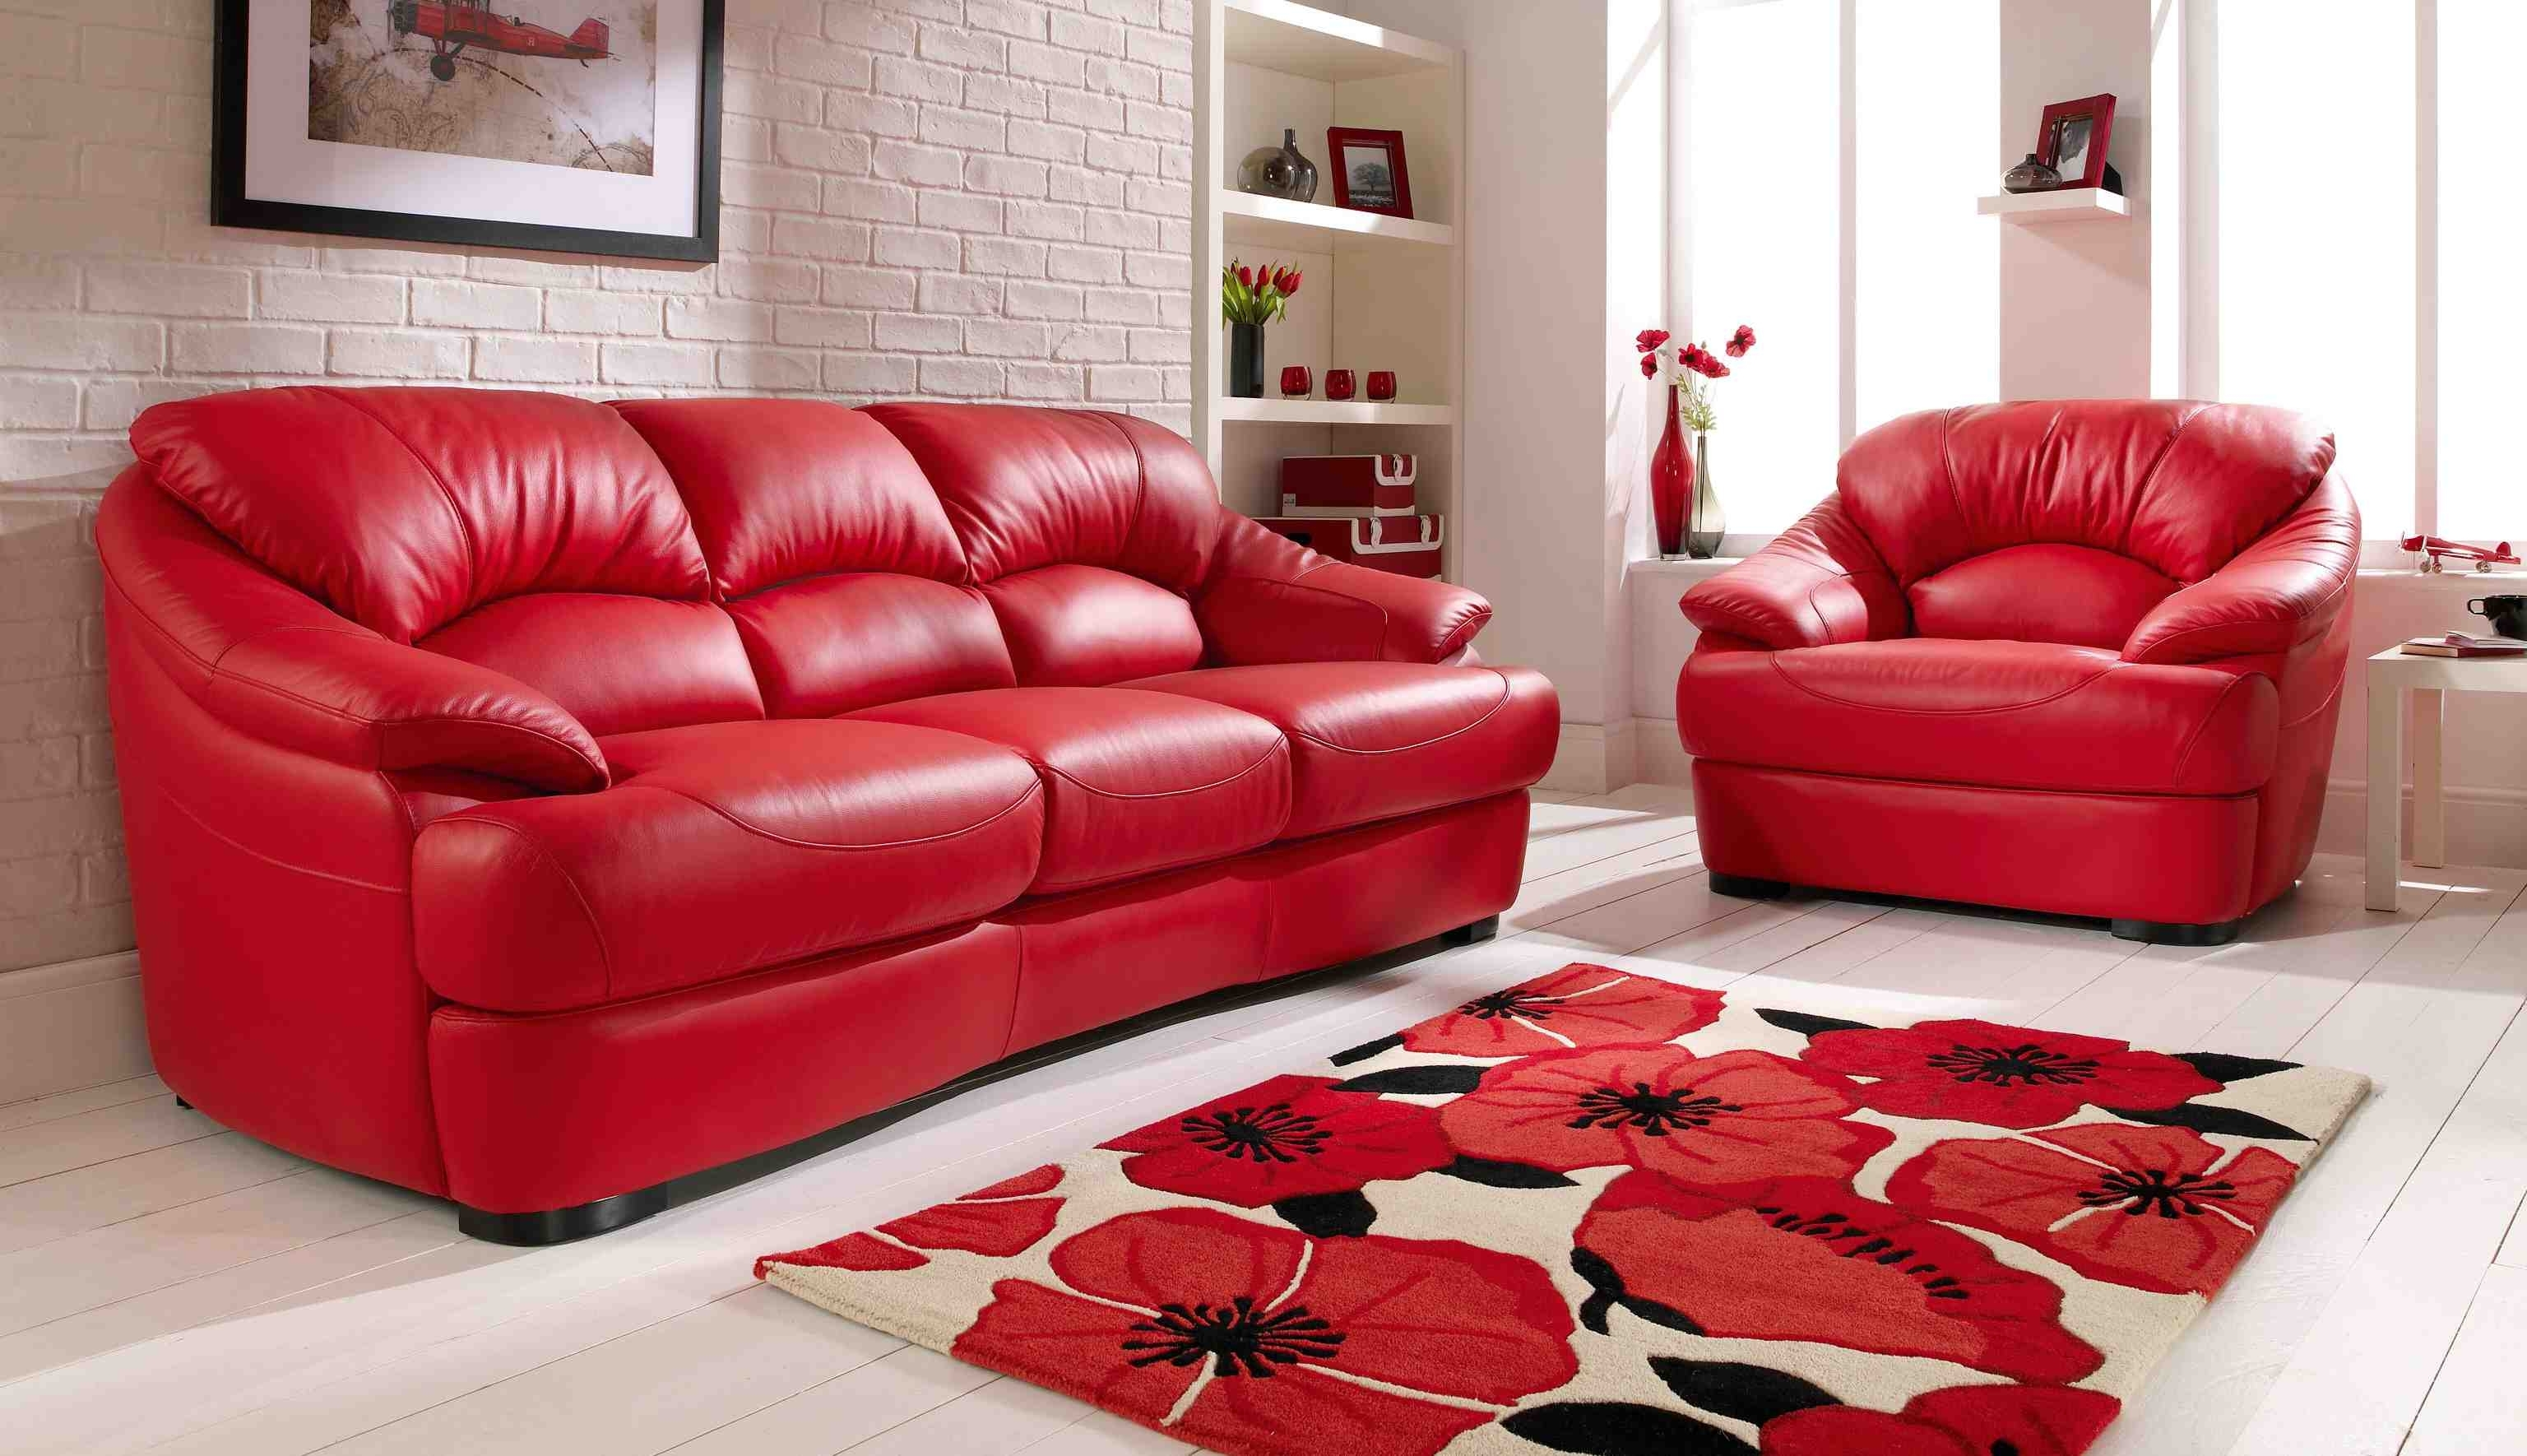 Small Red Leather Sectional Sofas Within Famous Sofas : Red Sectional Couch L Sofa Modular Sectional Sofa Gray (View 13 of 20)